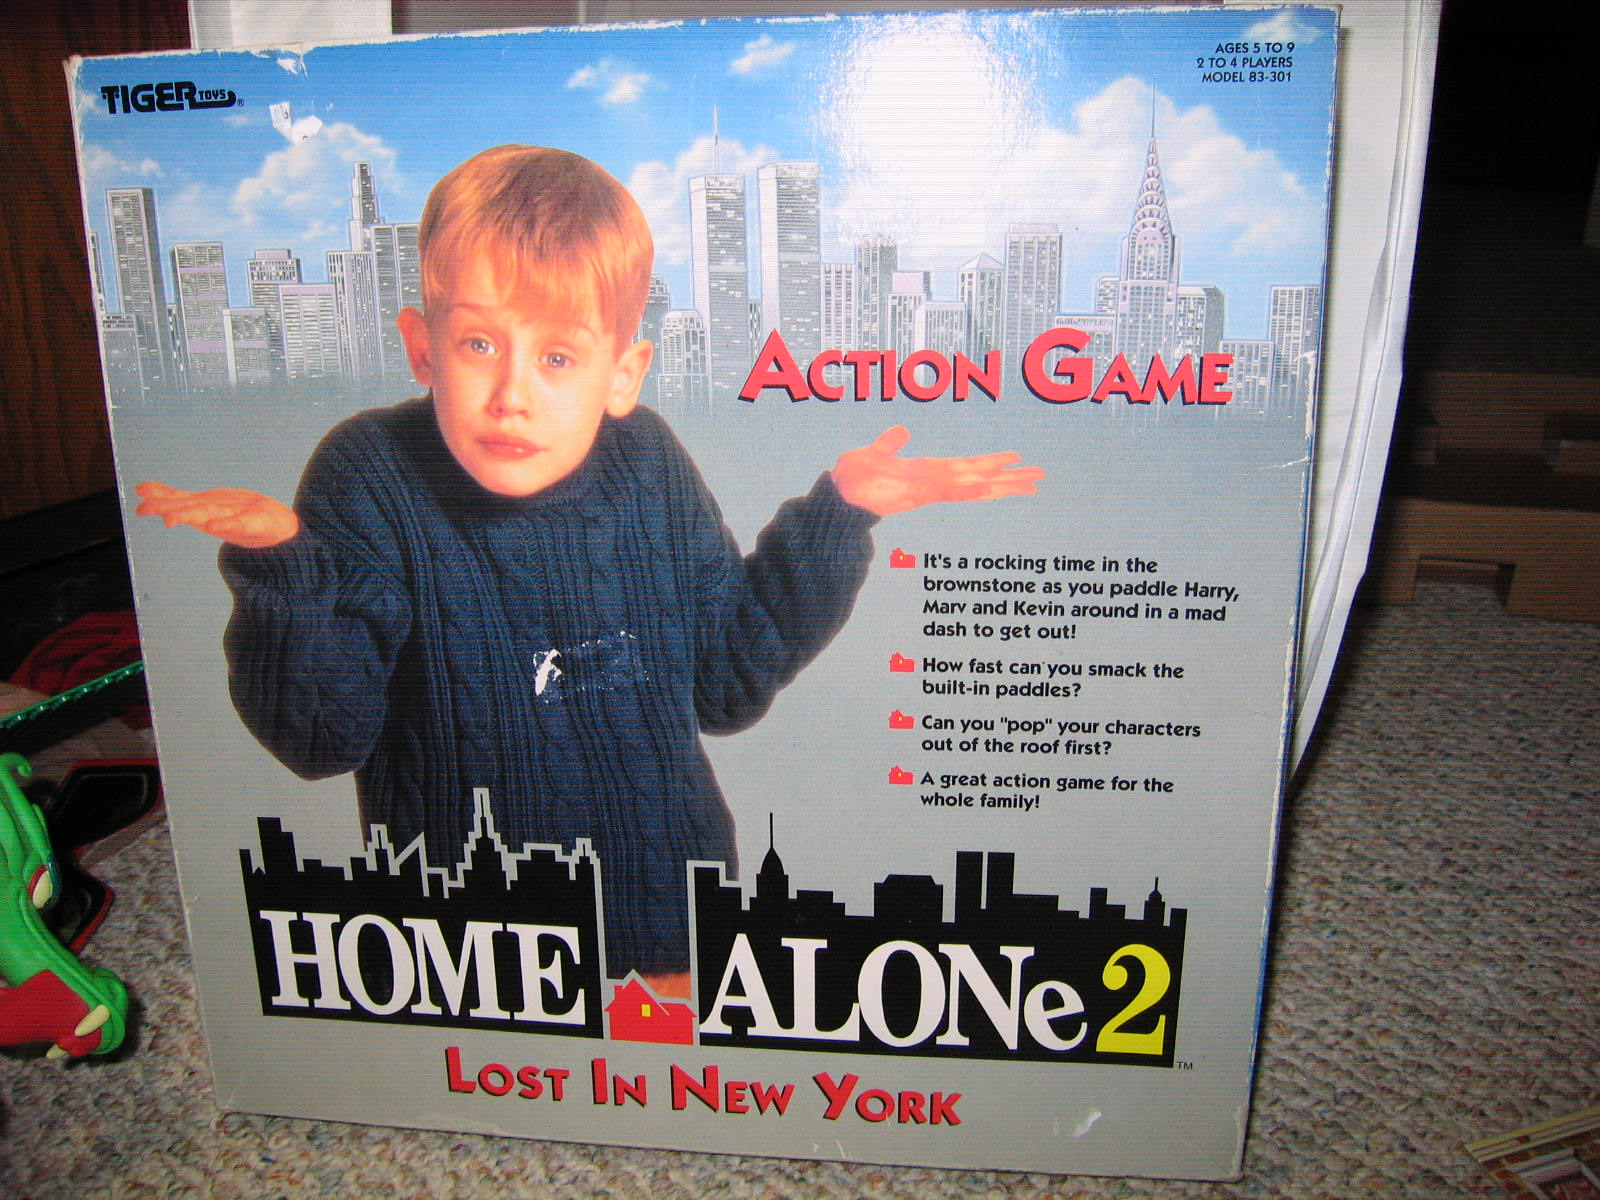 Gweenbrick Product Review 5 Home Alone 2 Action Game